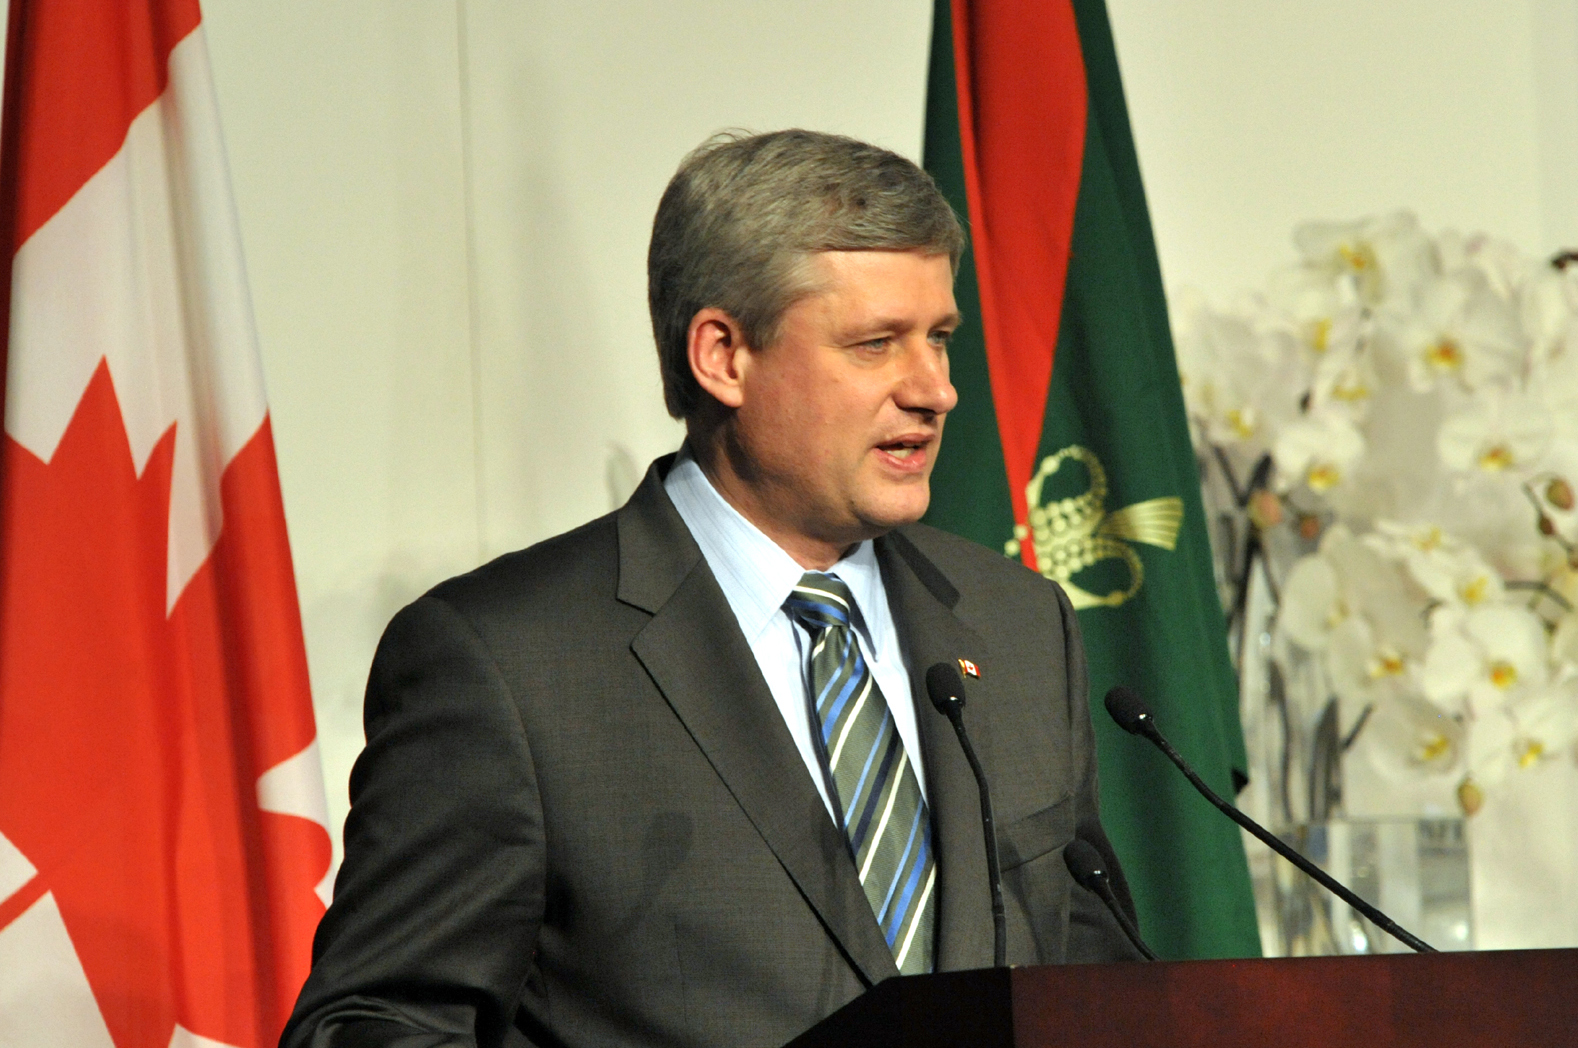 Canadian Prime Minister Stephen Harper speaking at the Foundation Ceremony in Toronto. Photo: Zahur Ramji